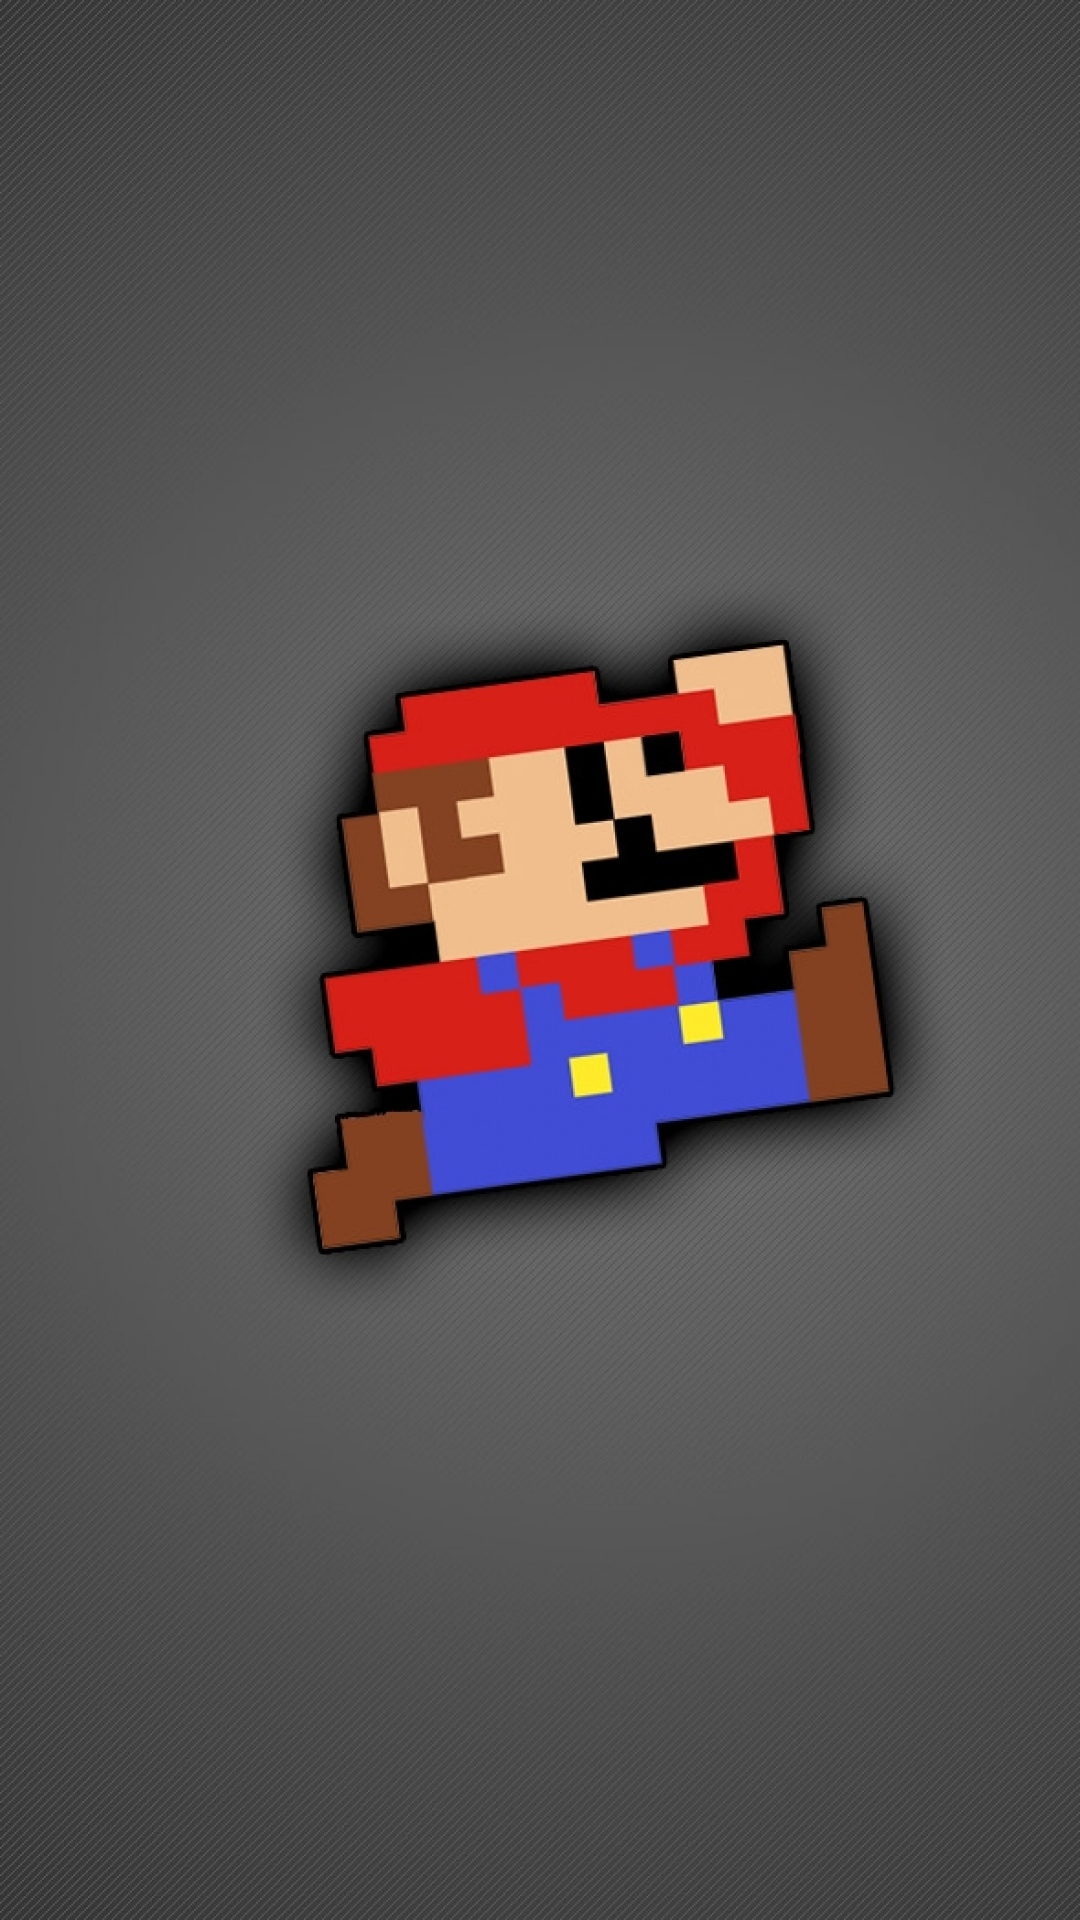 mario_cap_mustache_iphone_wallpaper_jump_22021_1080x1920